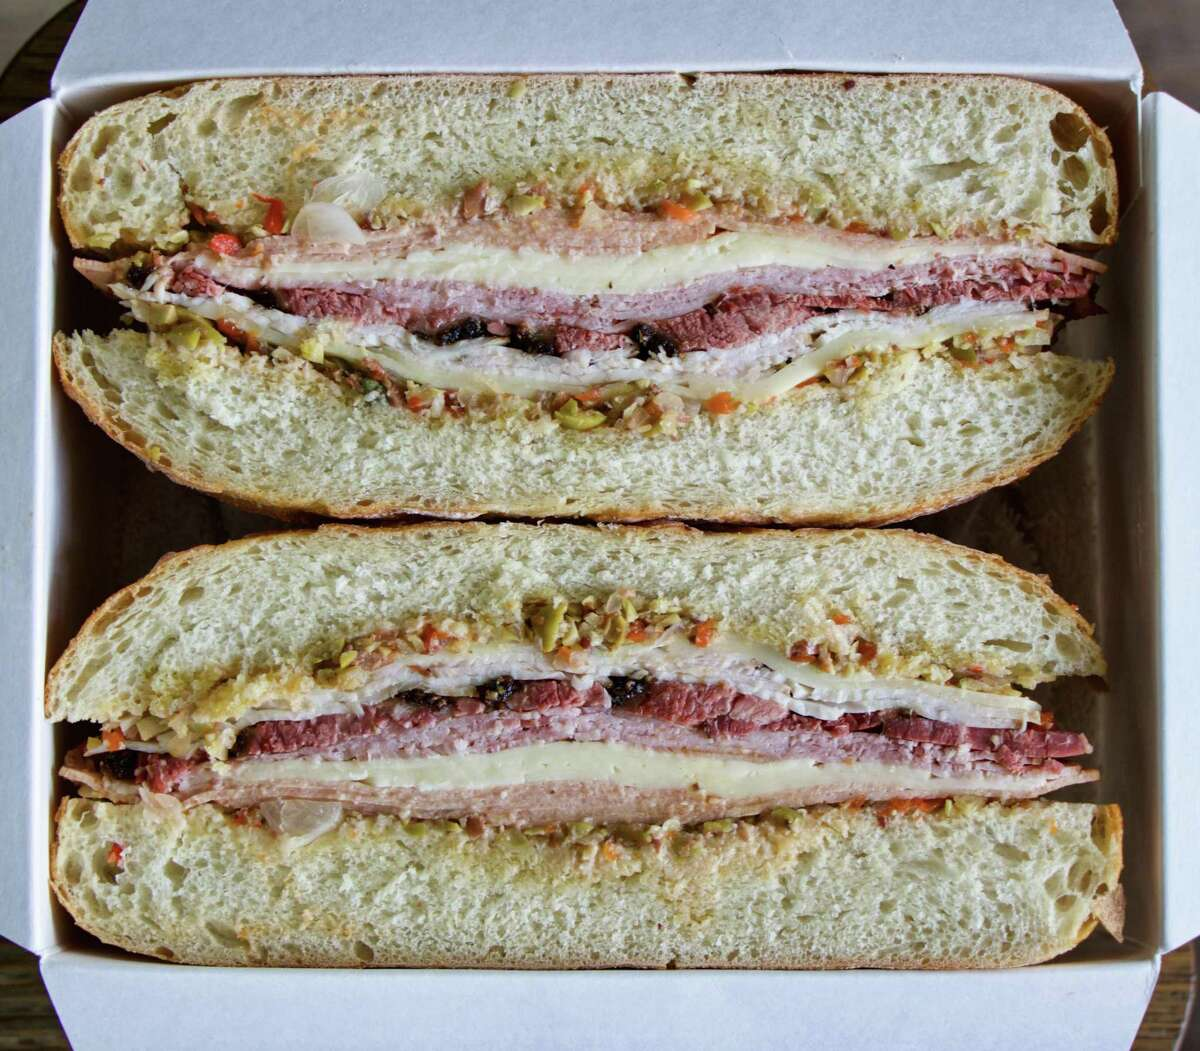 Brett's Barbecue Shop in Katy has created its own Texas Smoked Muffuletta made with house-smoked meats (pastrami, turkey breast, bologna and ham), Havarti and Provolone cheeses and hot giardiniera/olive/red pepper salad on an Italian round loaf.